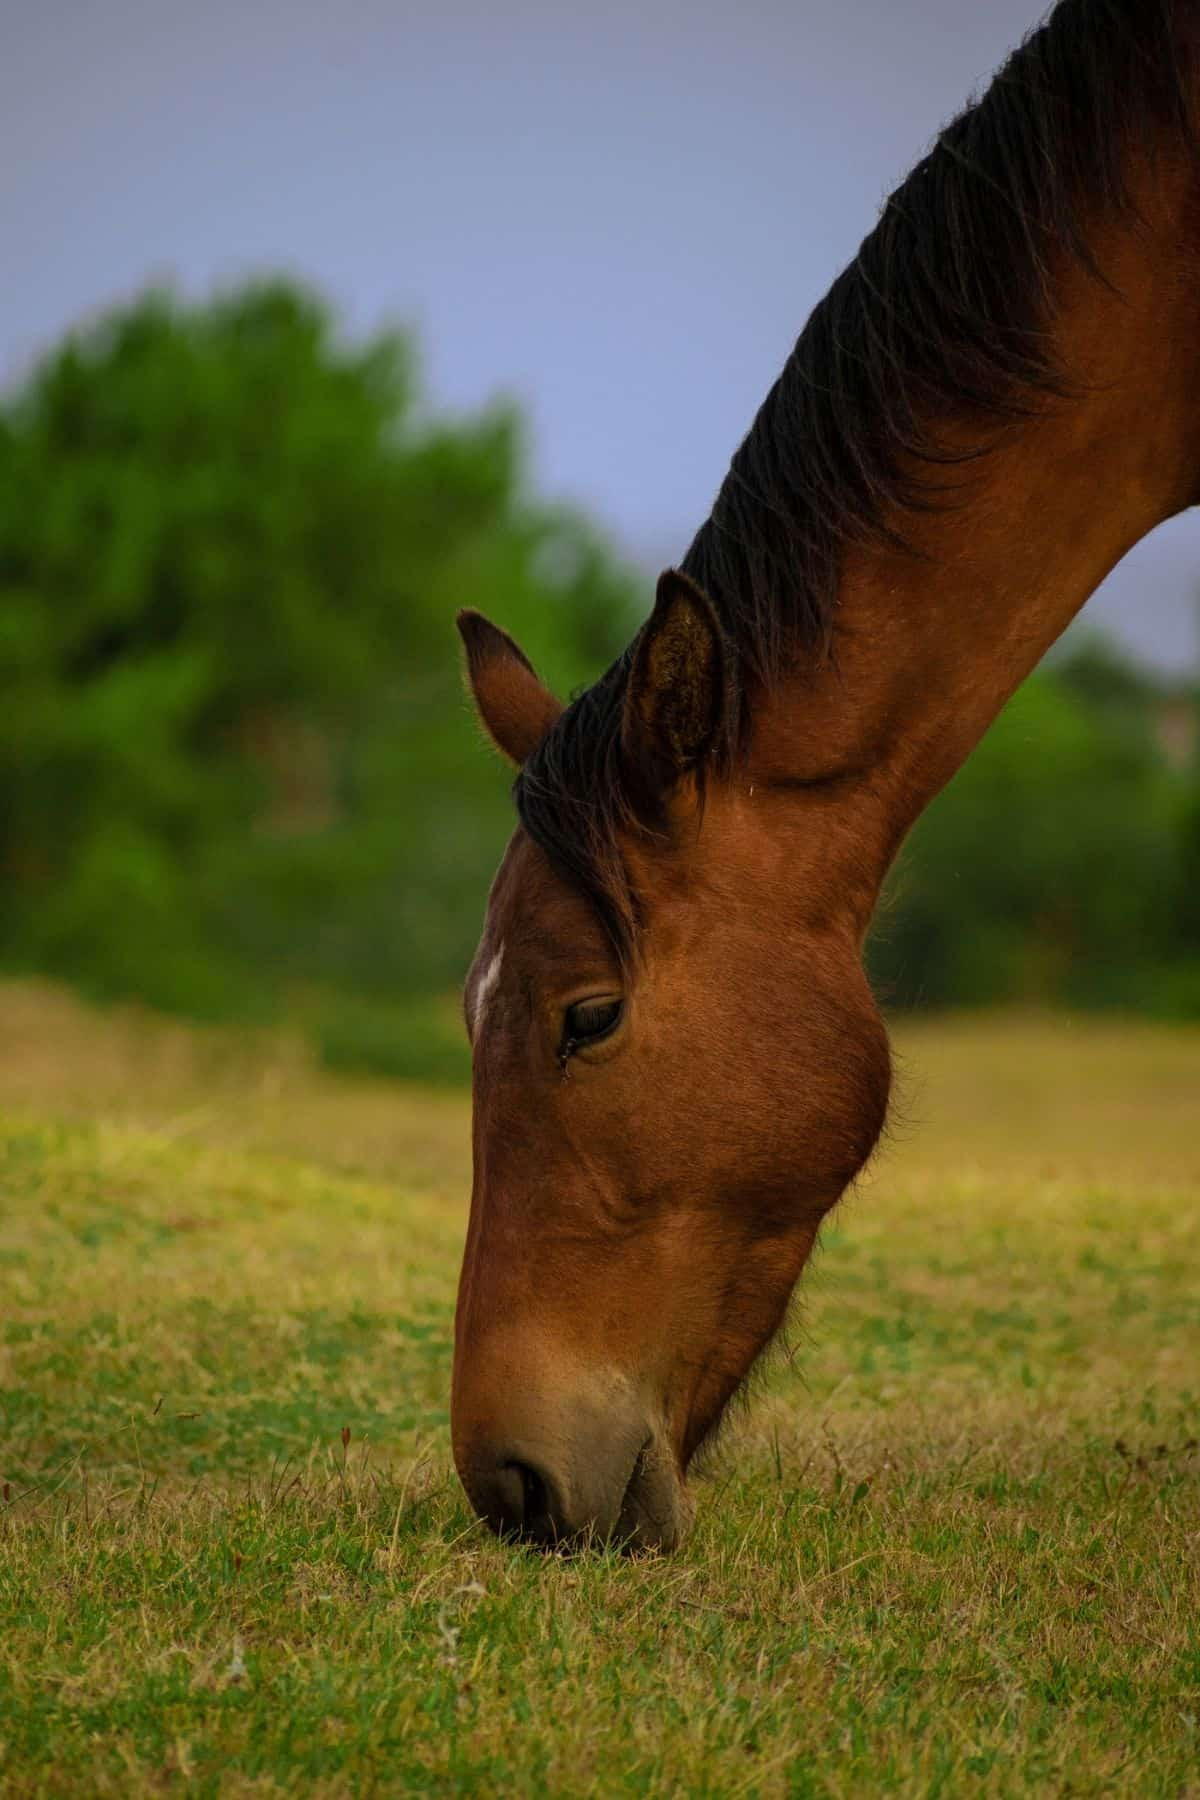 Brown horse with short mane eating grass